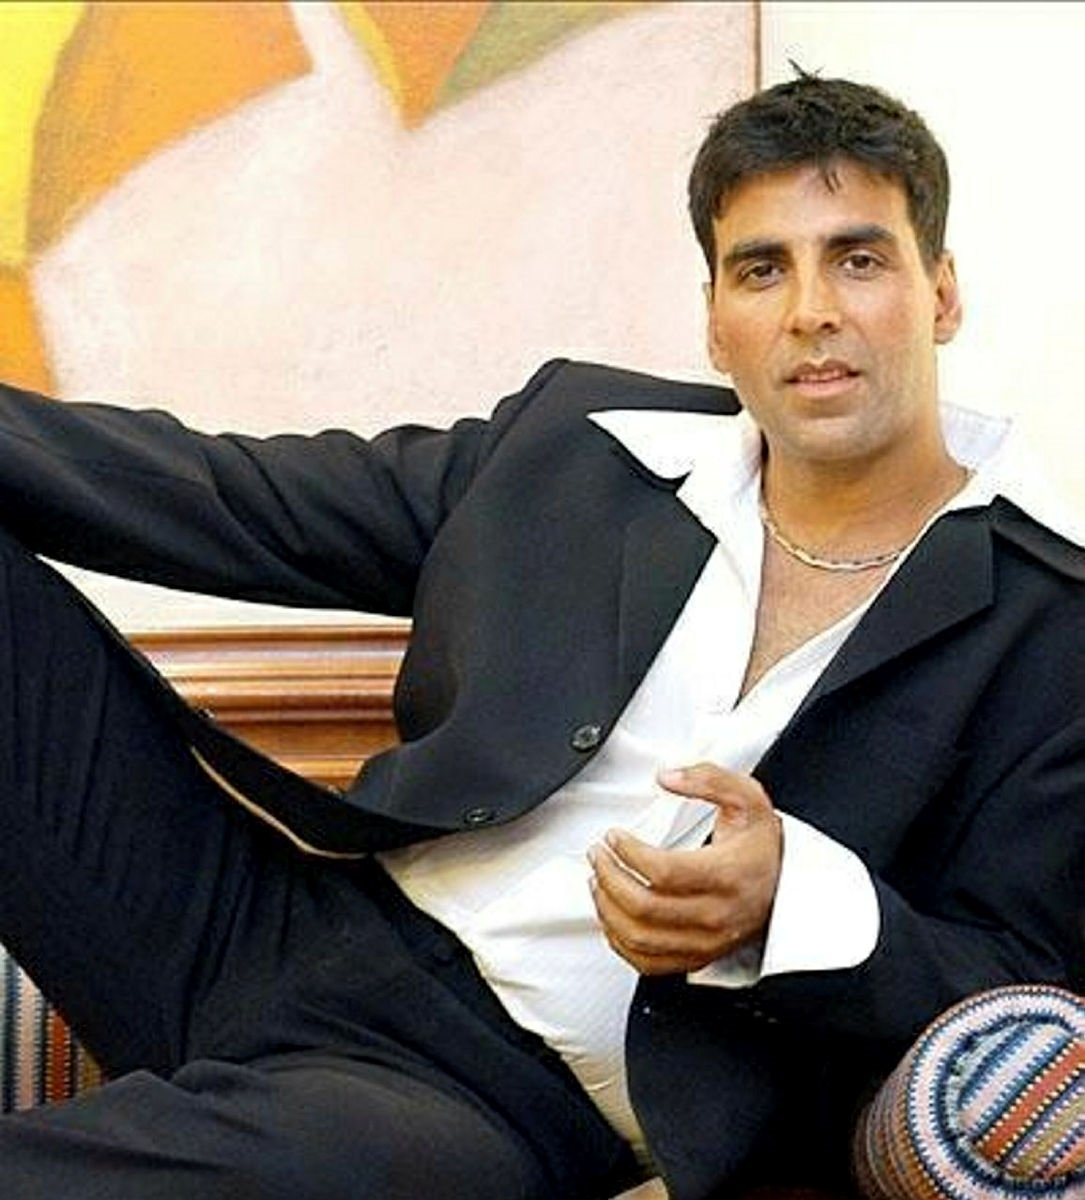 akshay 1 Reema kagti's sports drama gold has struck gold at the box office and overtaken singh is bliing (which earned rs 2067 crore on its first day) to become akshay kumar's highest opening film ever.